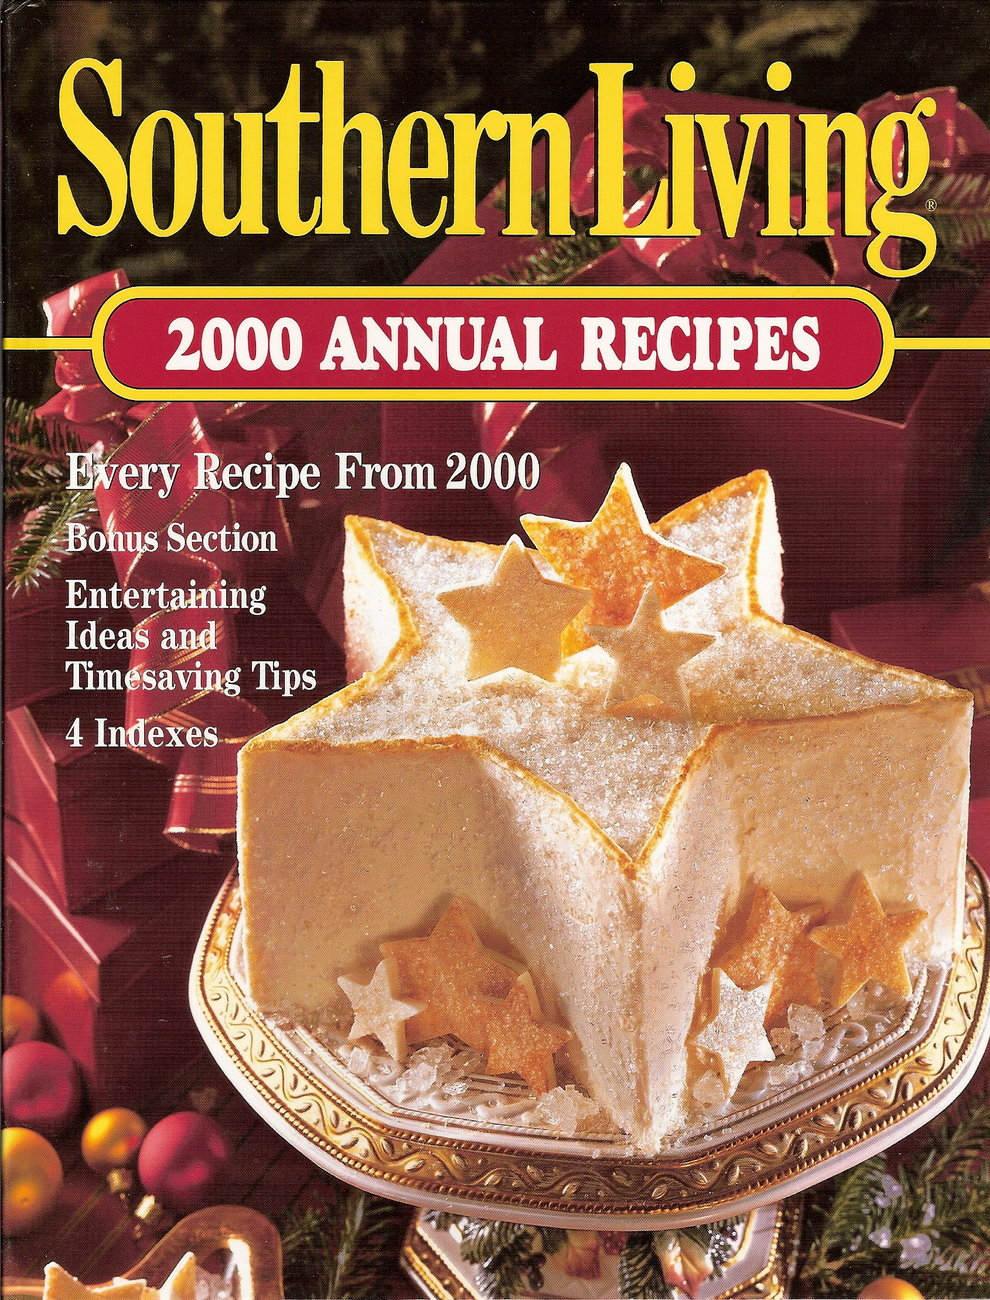 Southern living 2000 1